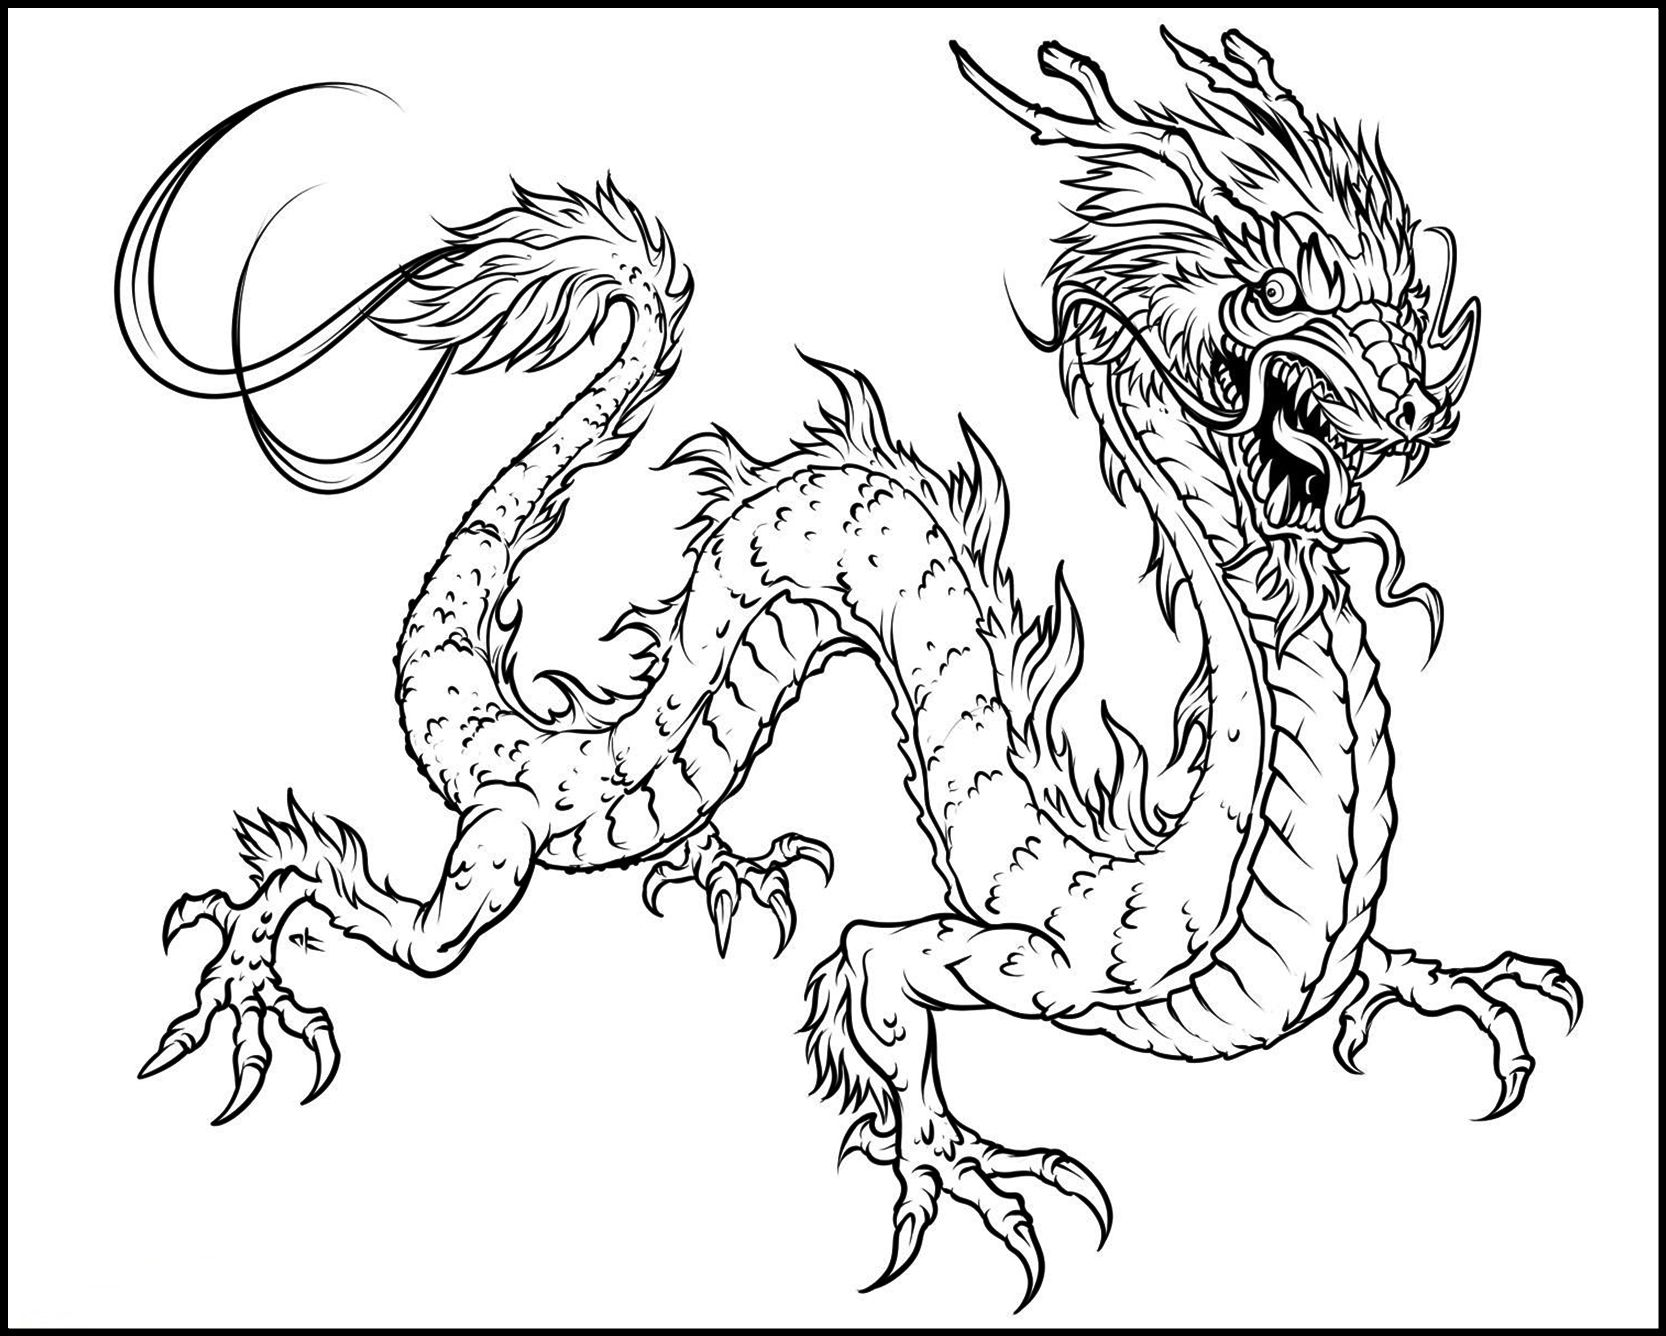 Dragon Coloring Pages For Adults | ♫ Color With Me ♪ | Pinterest ...